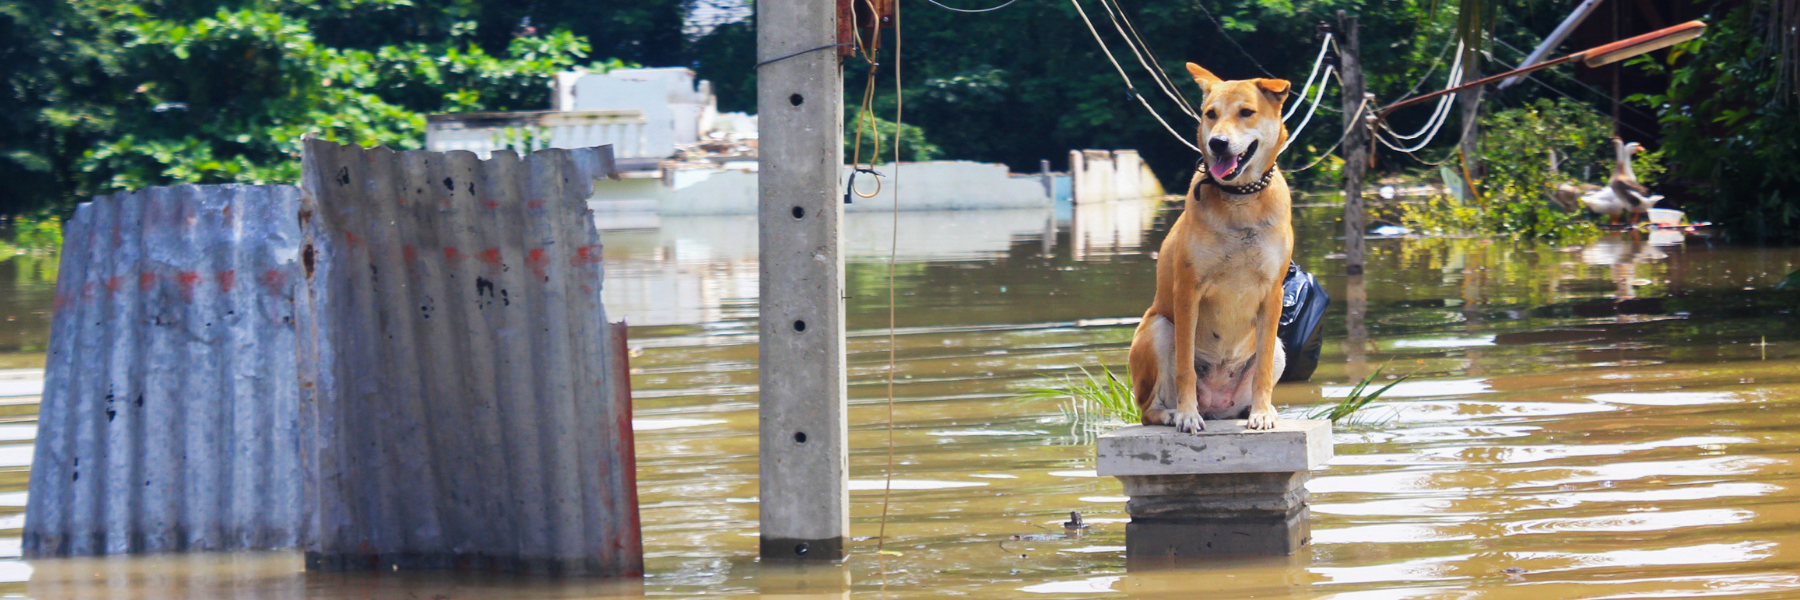 Planning for Your Pets during Evacuations